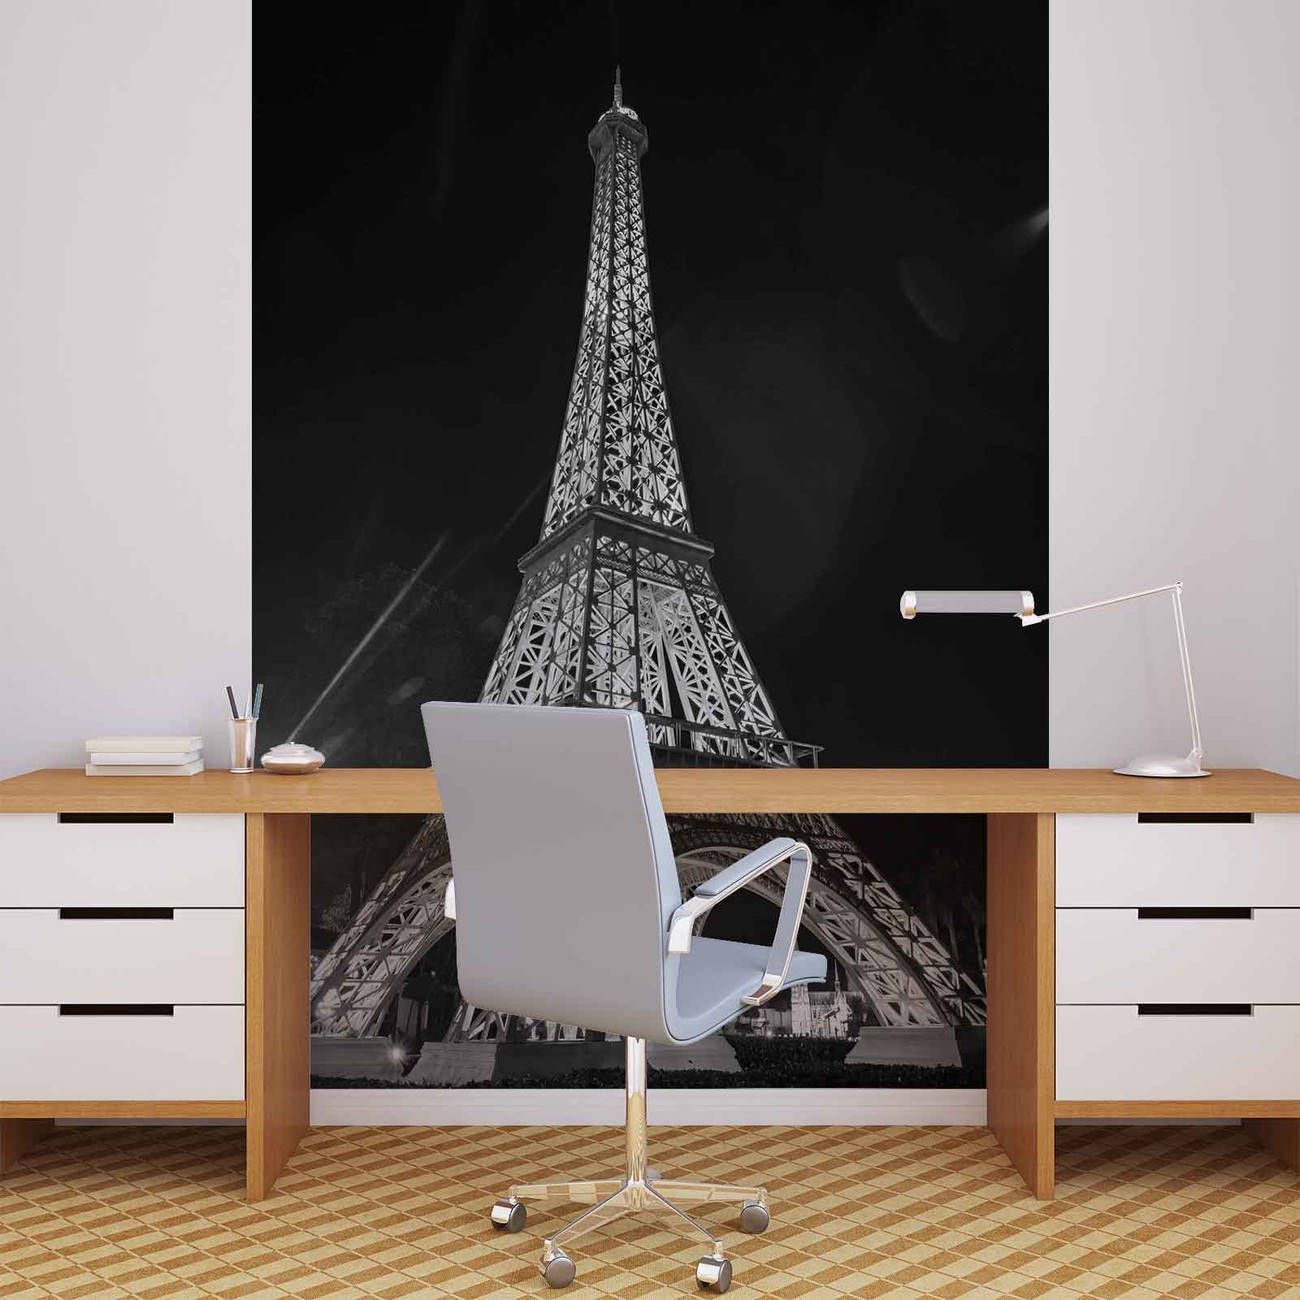 Paris eiffel tower wall paper mural buy at europosters for Eiffel tower mural black and white